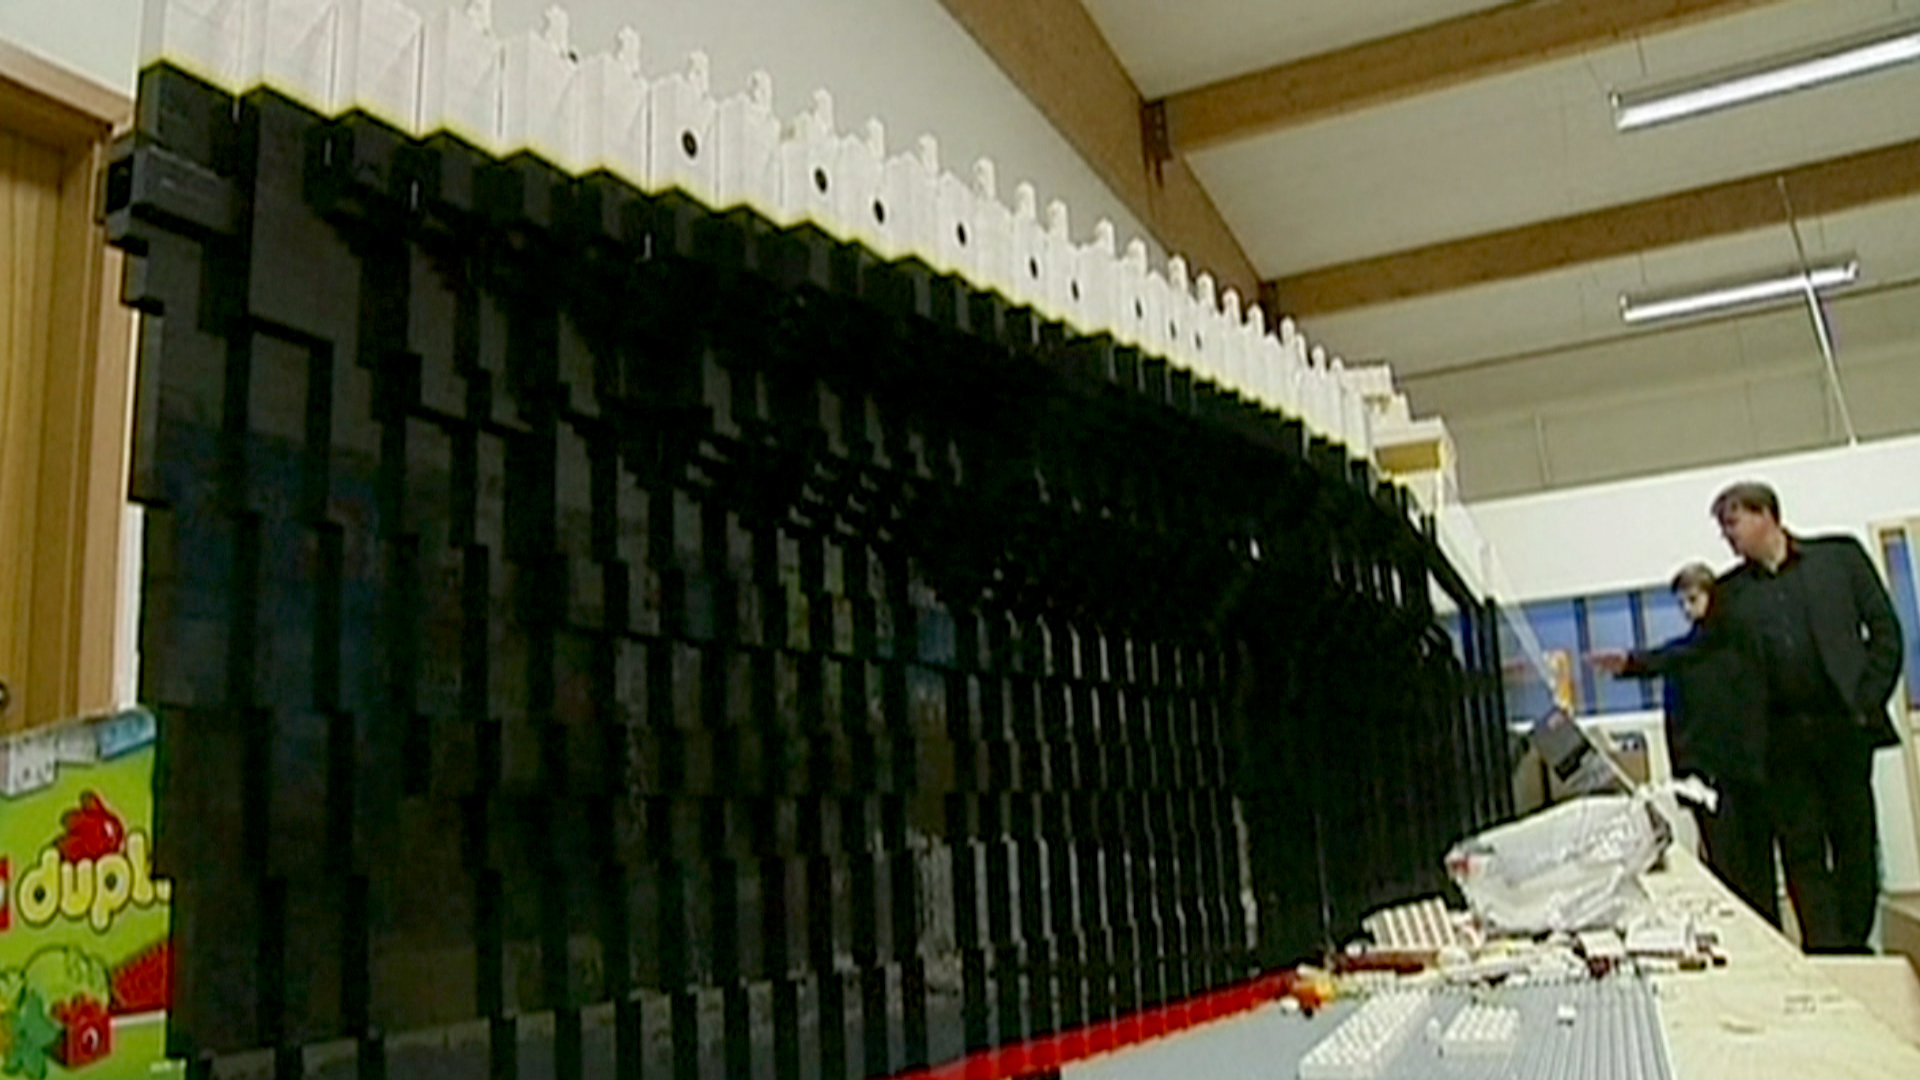 Sale On Legos 11 Year Old Building Titanic Out Of Legos Nbc News